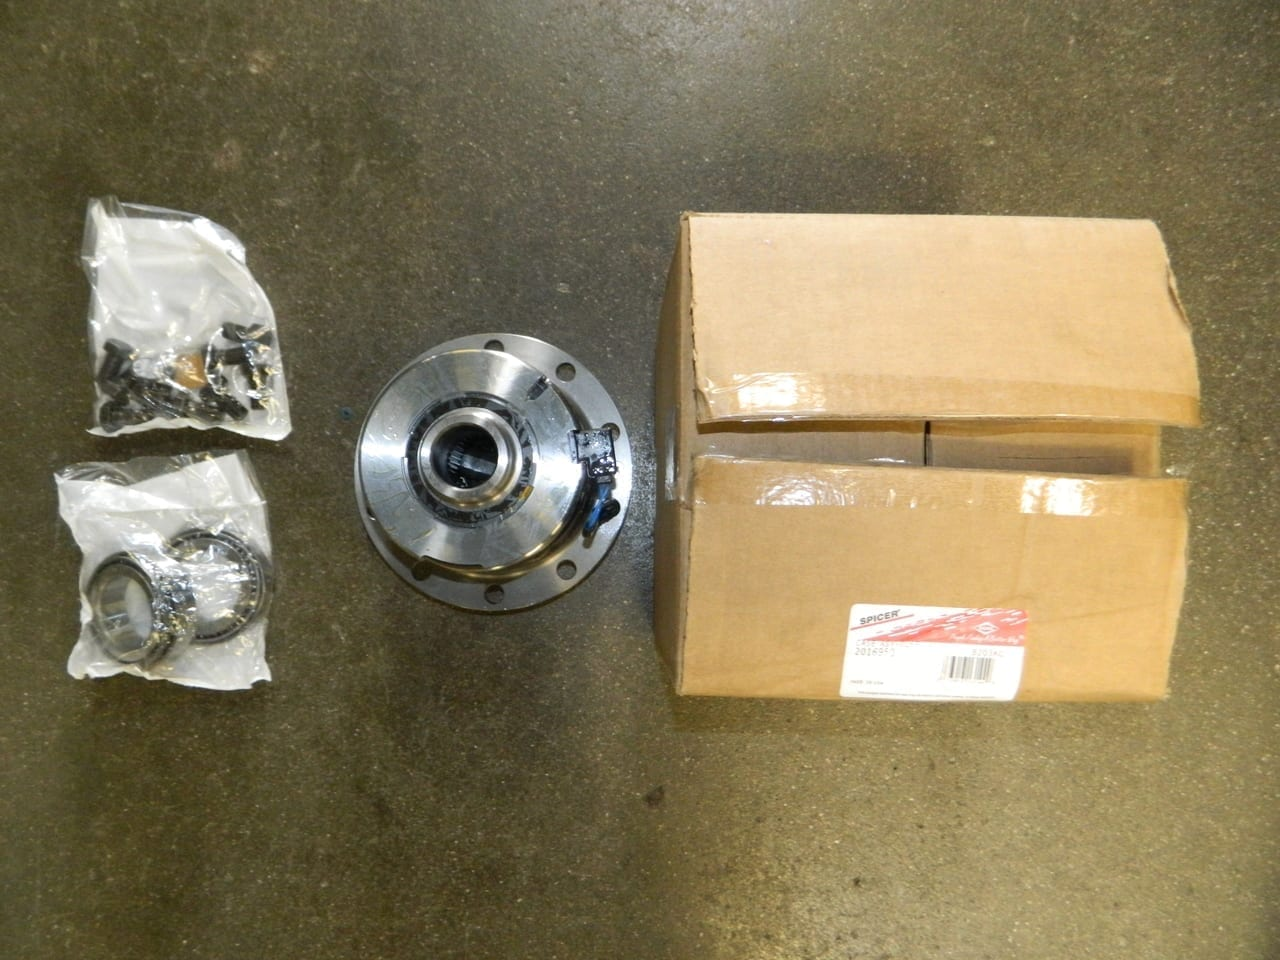 2016950 Dana Spicer OE E-Locker for Nissan Titan M226 Rear 32 Spline 2004-2015